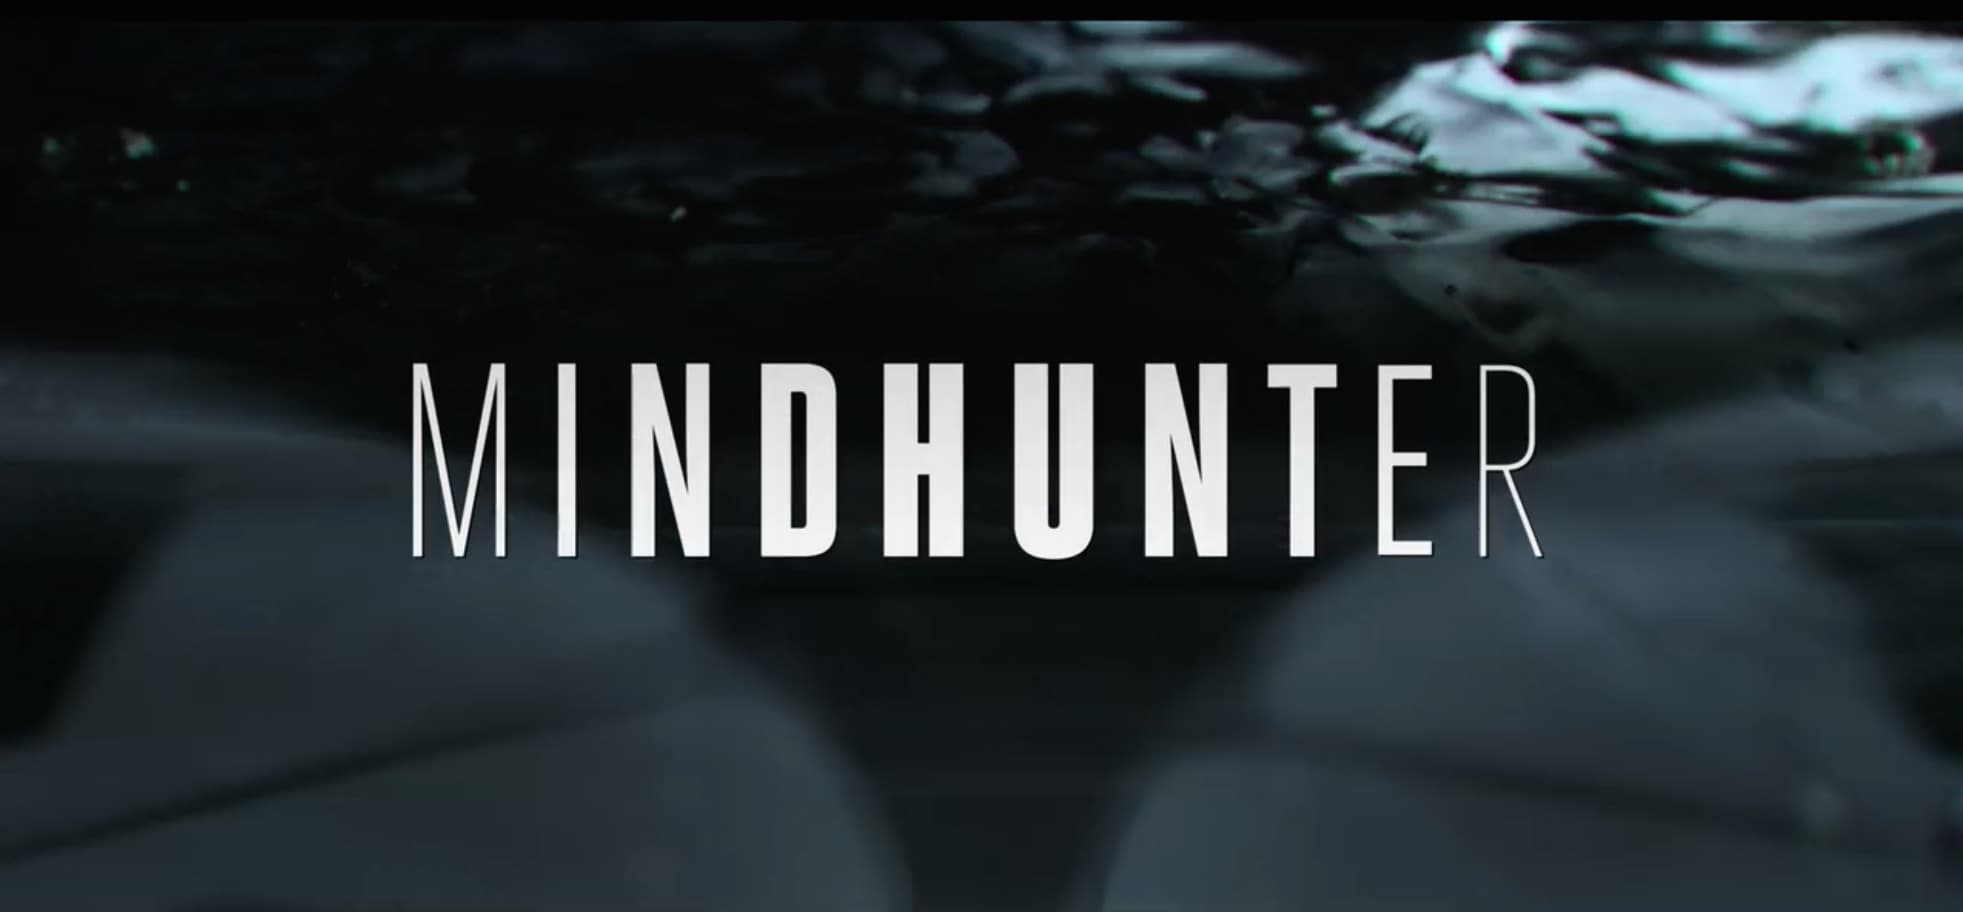 Text Graphics in Video Top Trends - Mindhunter